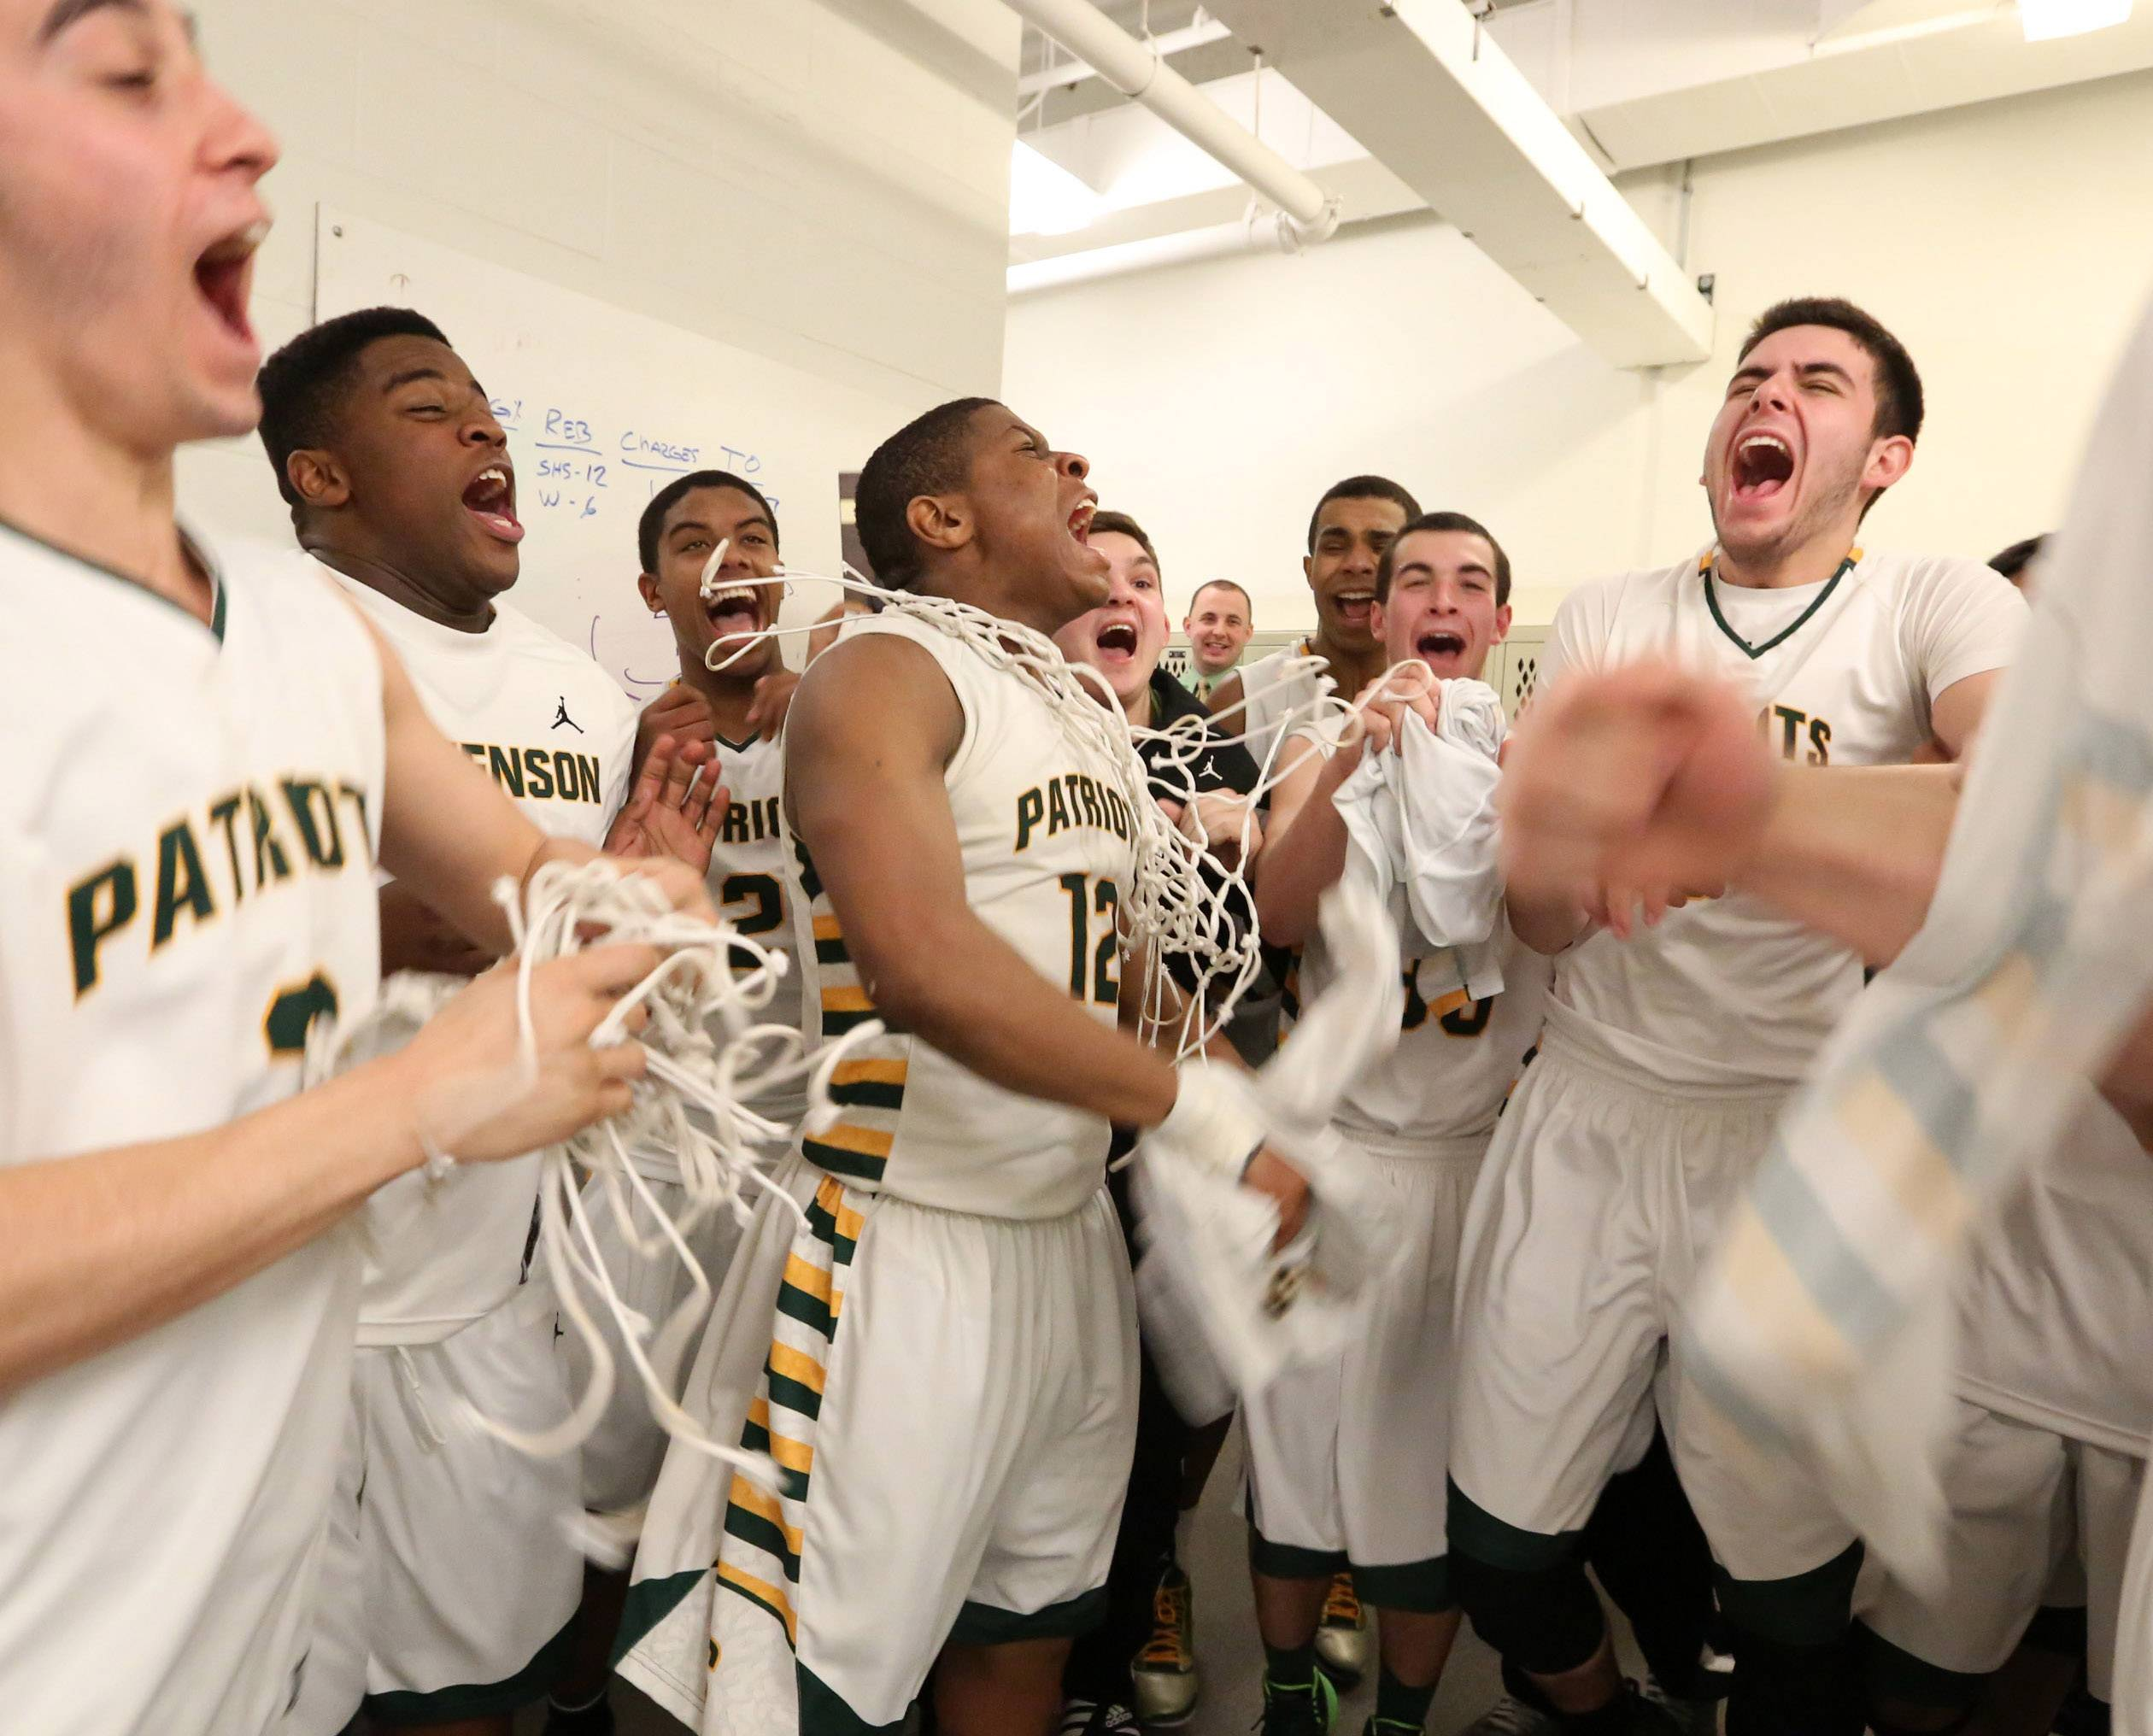 Stevenson celebrates in the locker room after topping Warren 79-59 in Class 4A regional final play at McHenry on Friday.